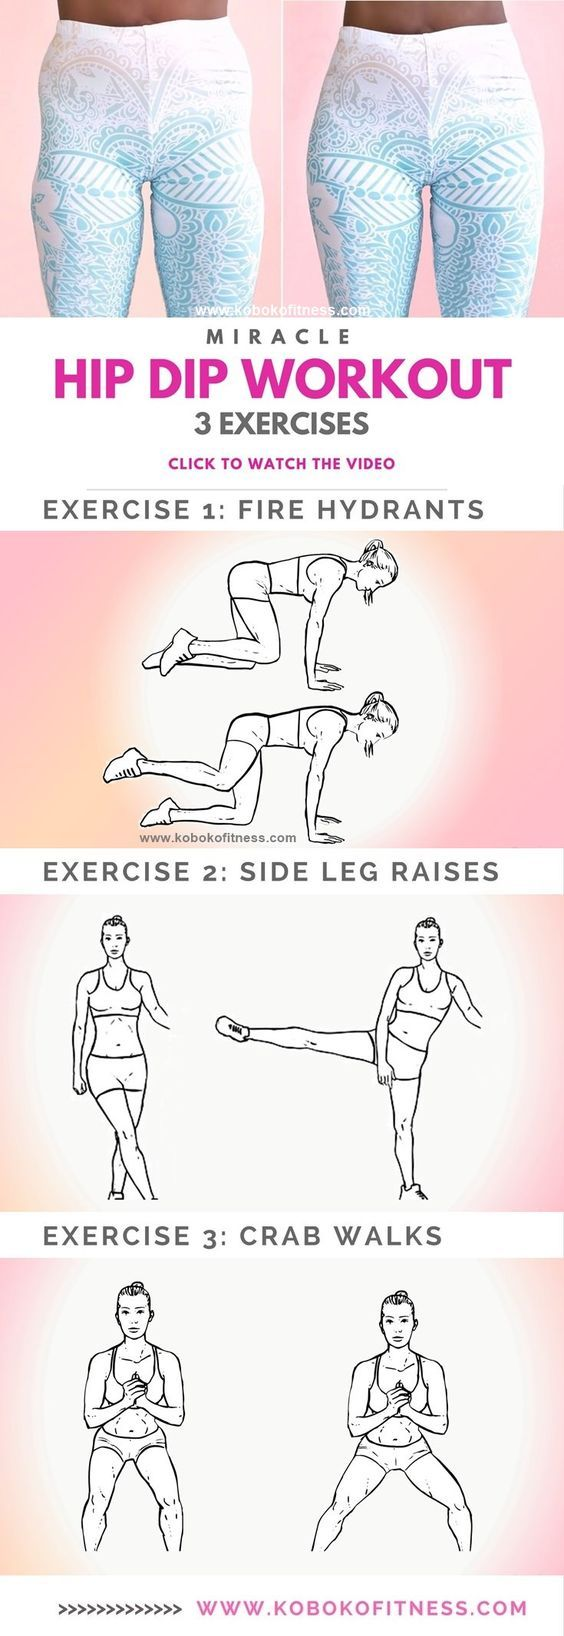 The best hip dip workout exercises with full workout video that is easy to follow. Add this to your butt workout for wider hips and an hour glass figure